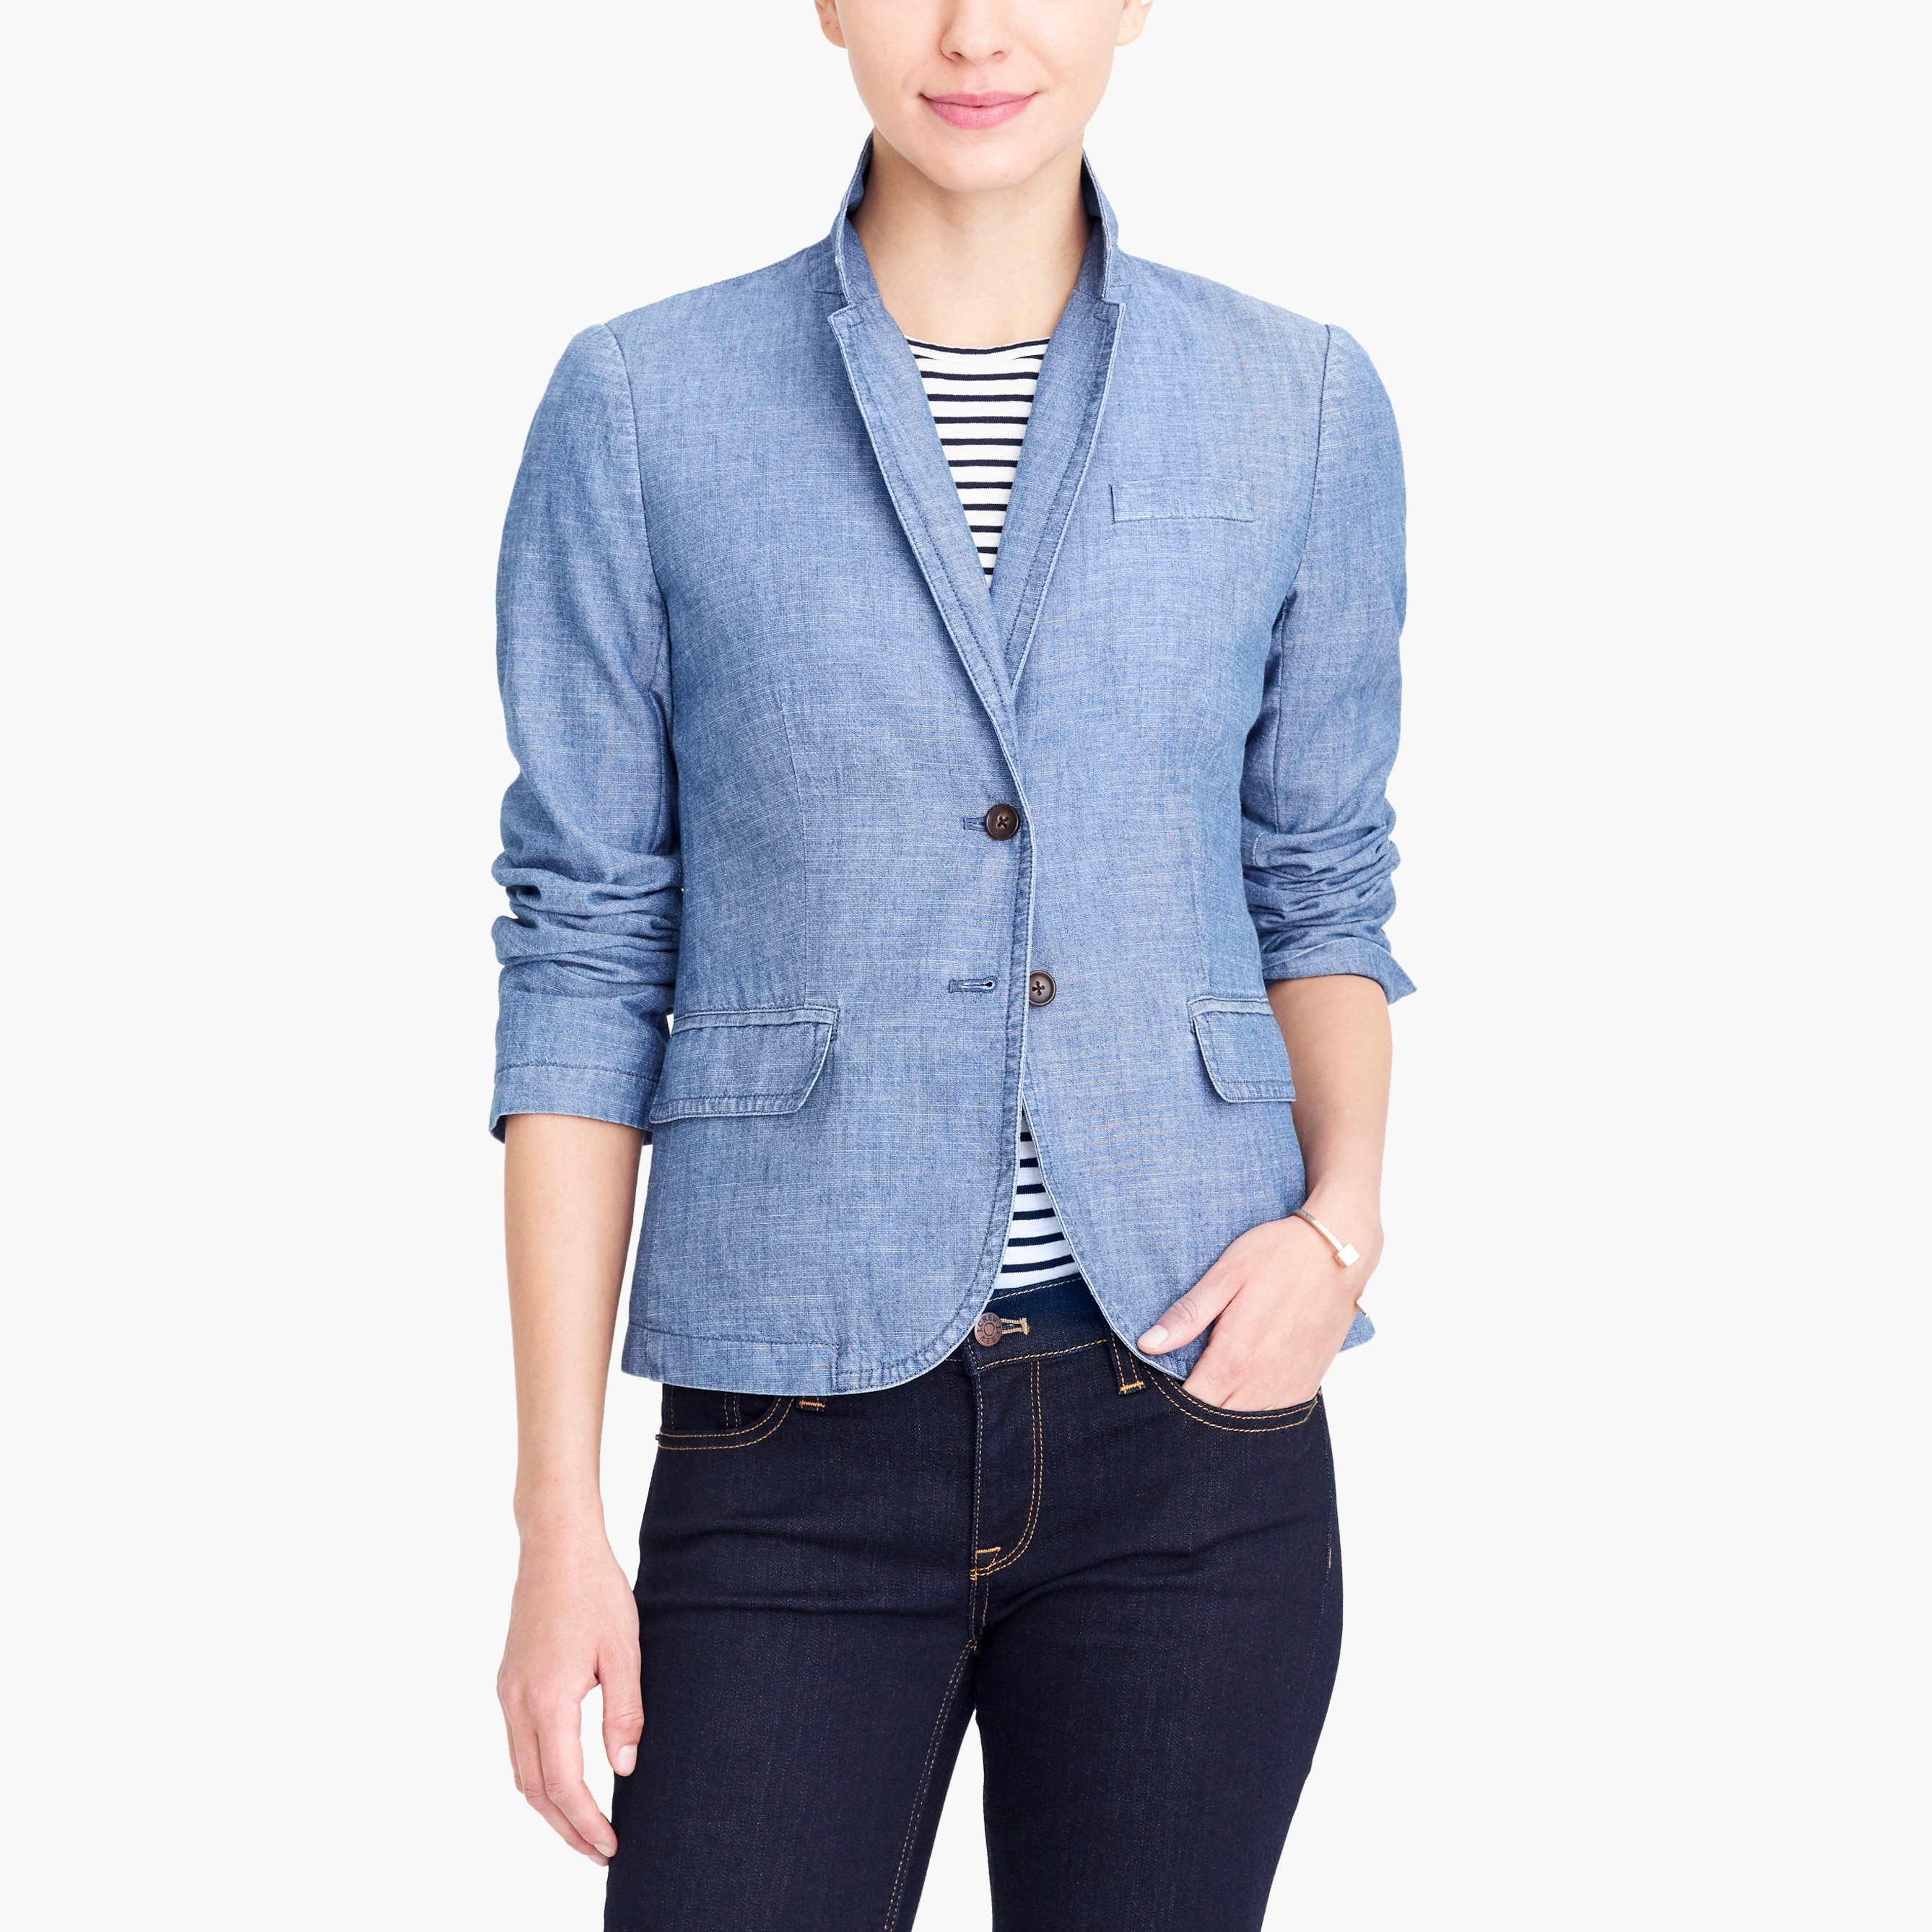 Image 1 for Chambray blazer